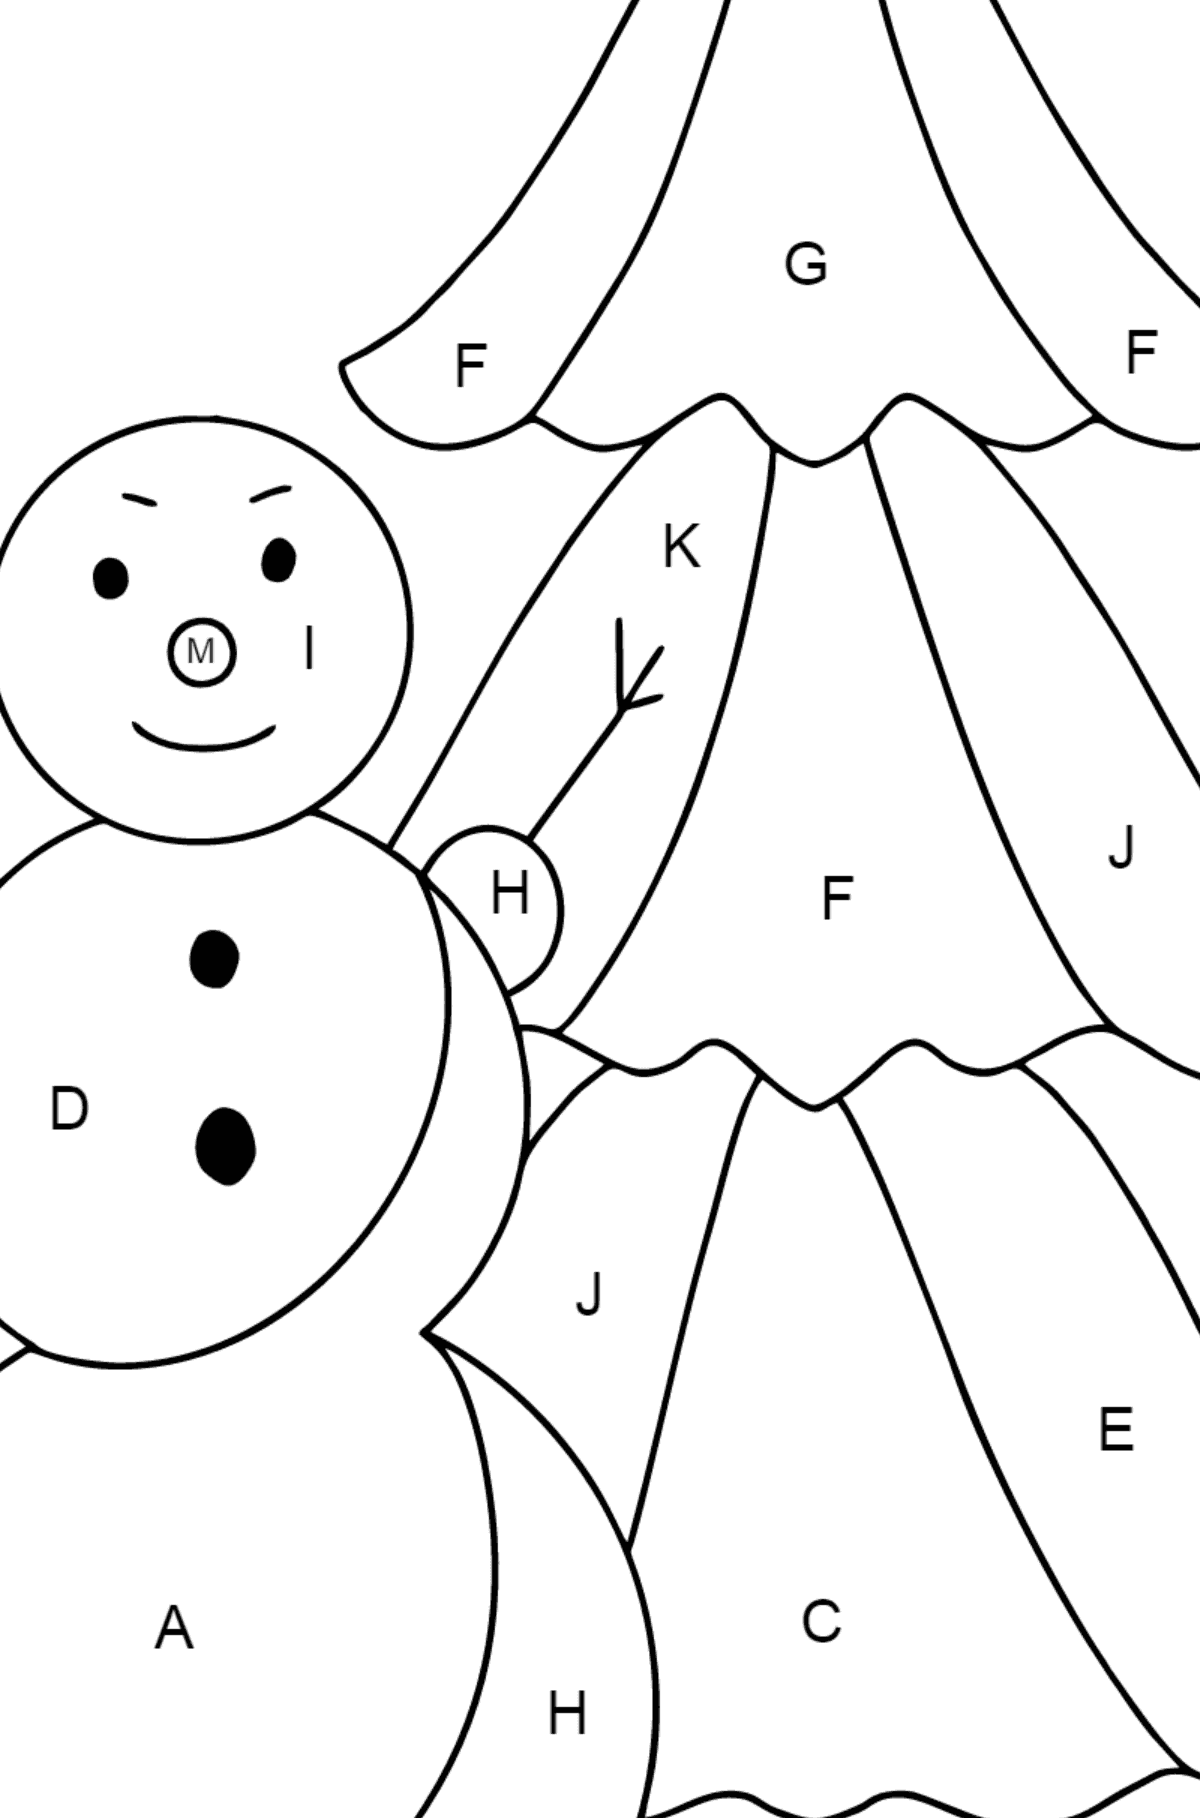 Winter Coloring Page - A Snowman with a Beautiful Christmas Tree for Children  - Color by Letters